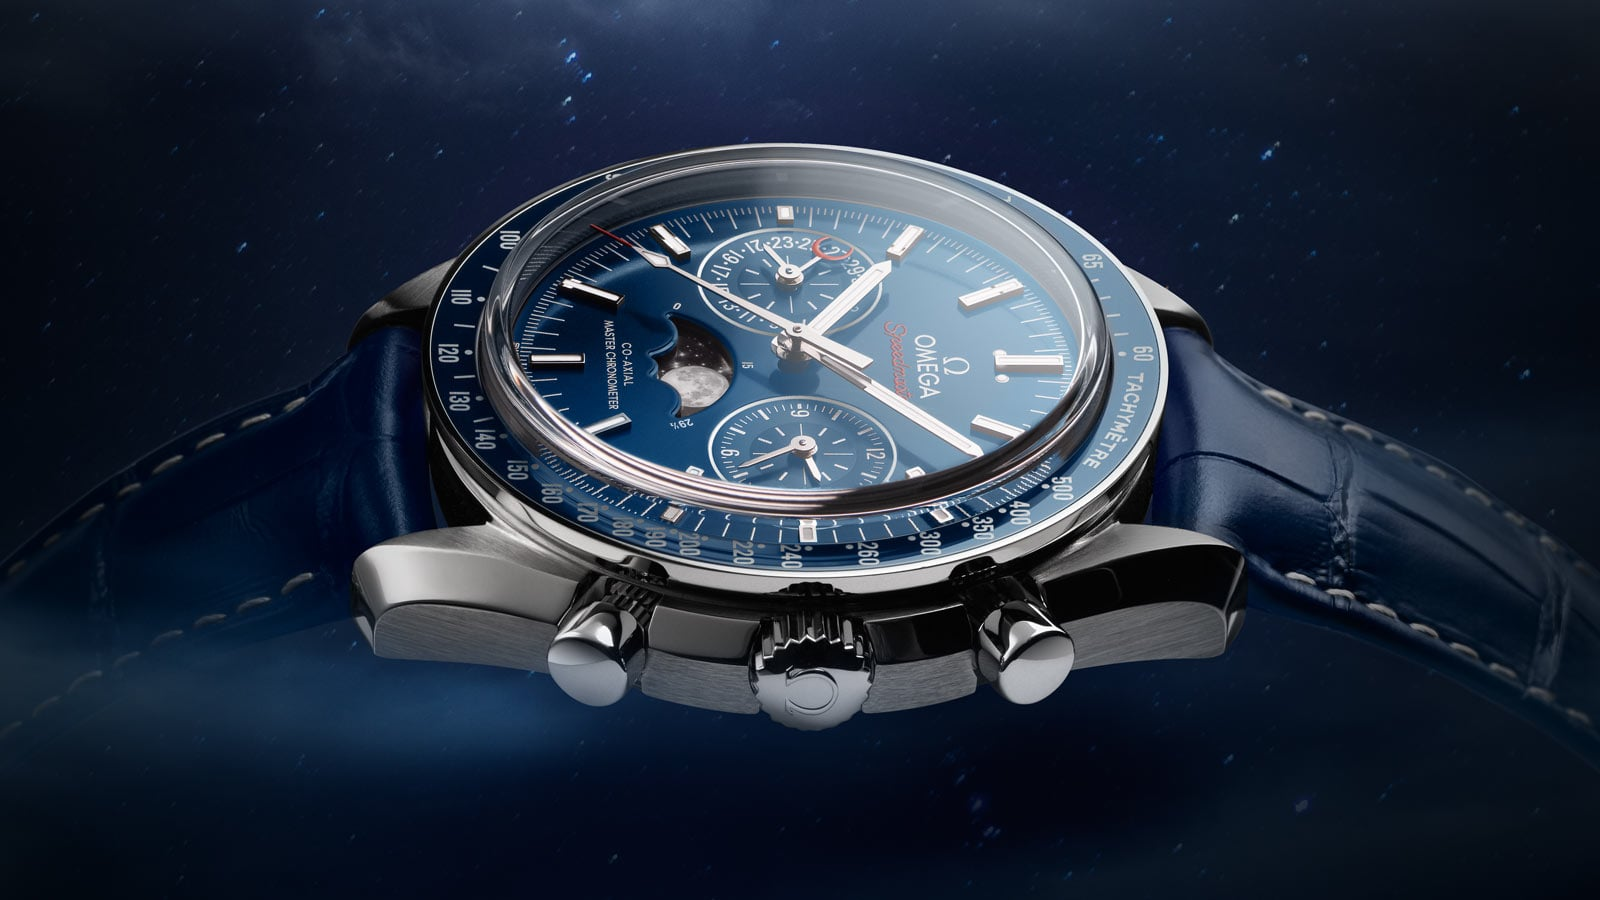 Side shot of the Omega MOONWATCH MOONPHASE steel case on blue bracelet